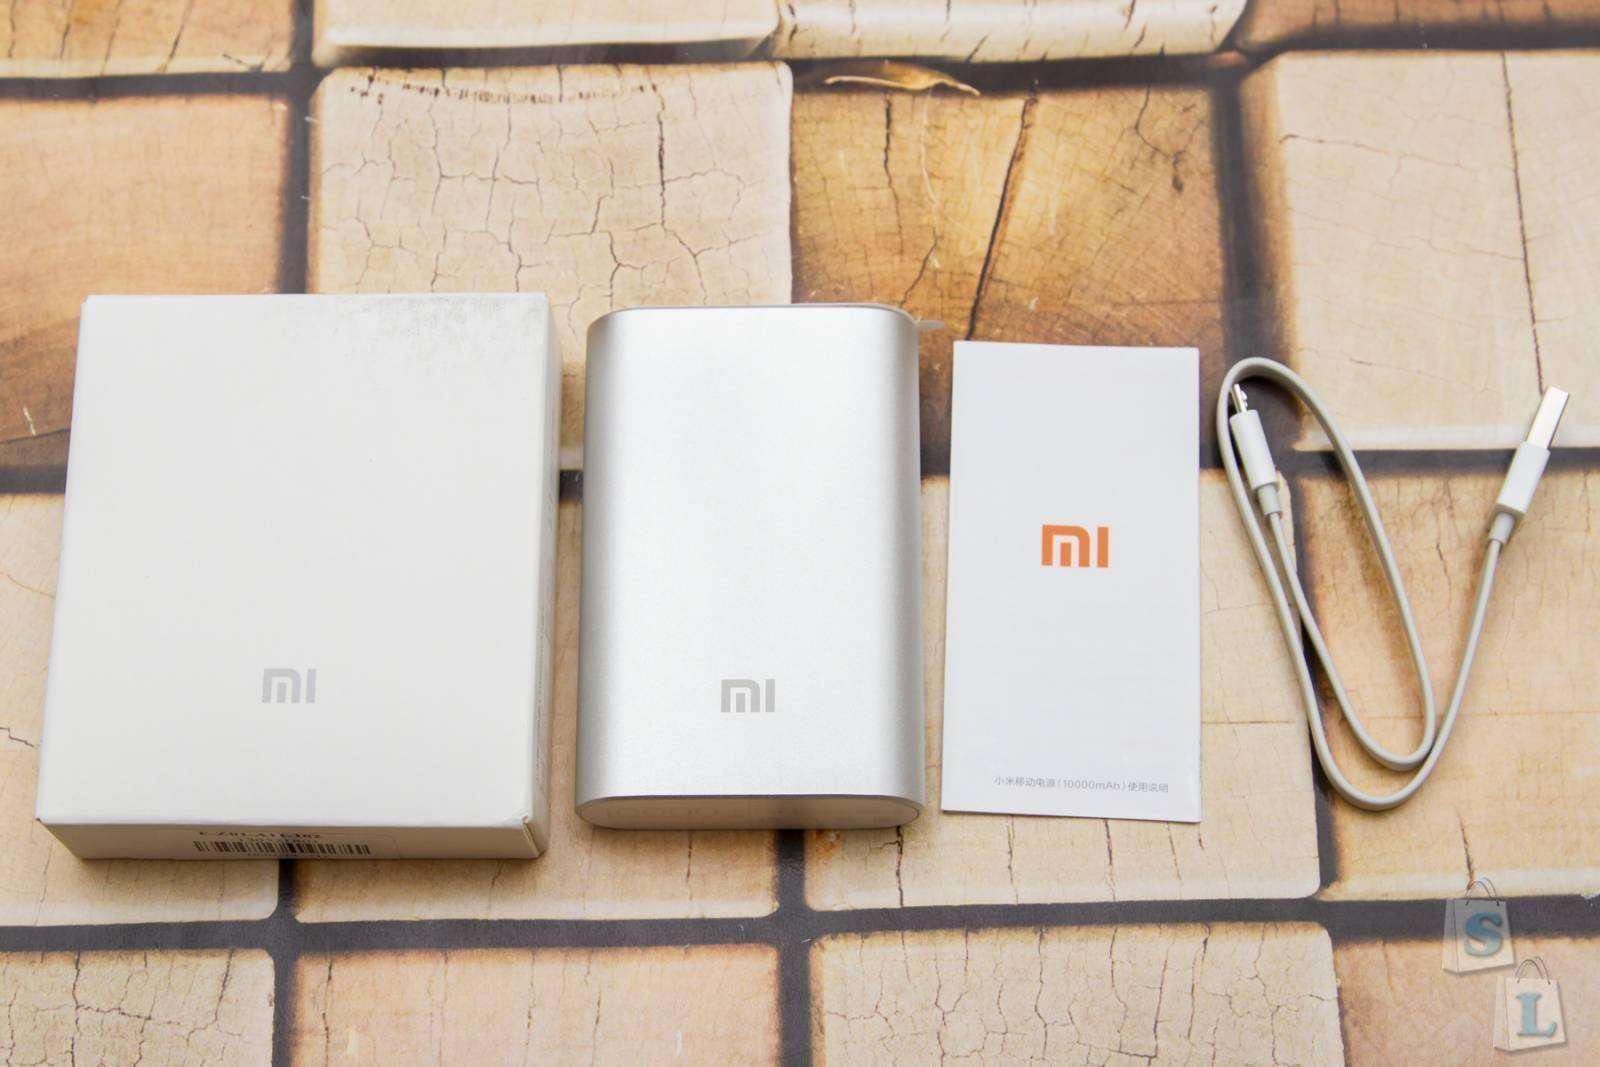 GearBest: Еще раз о PowerBank Xiaomi 10000